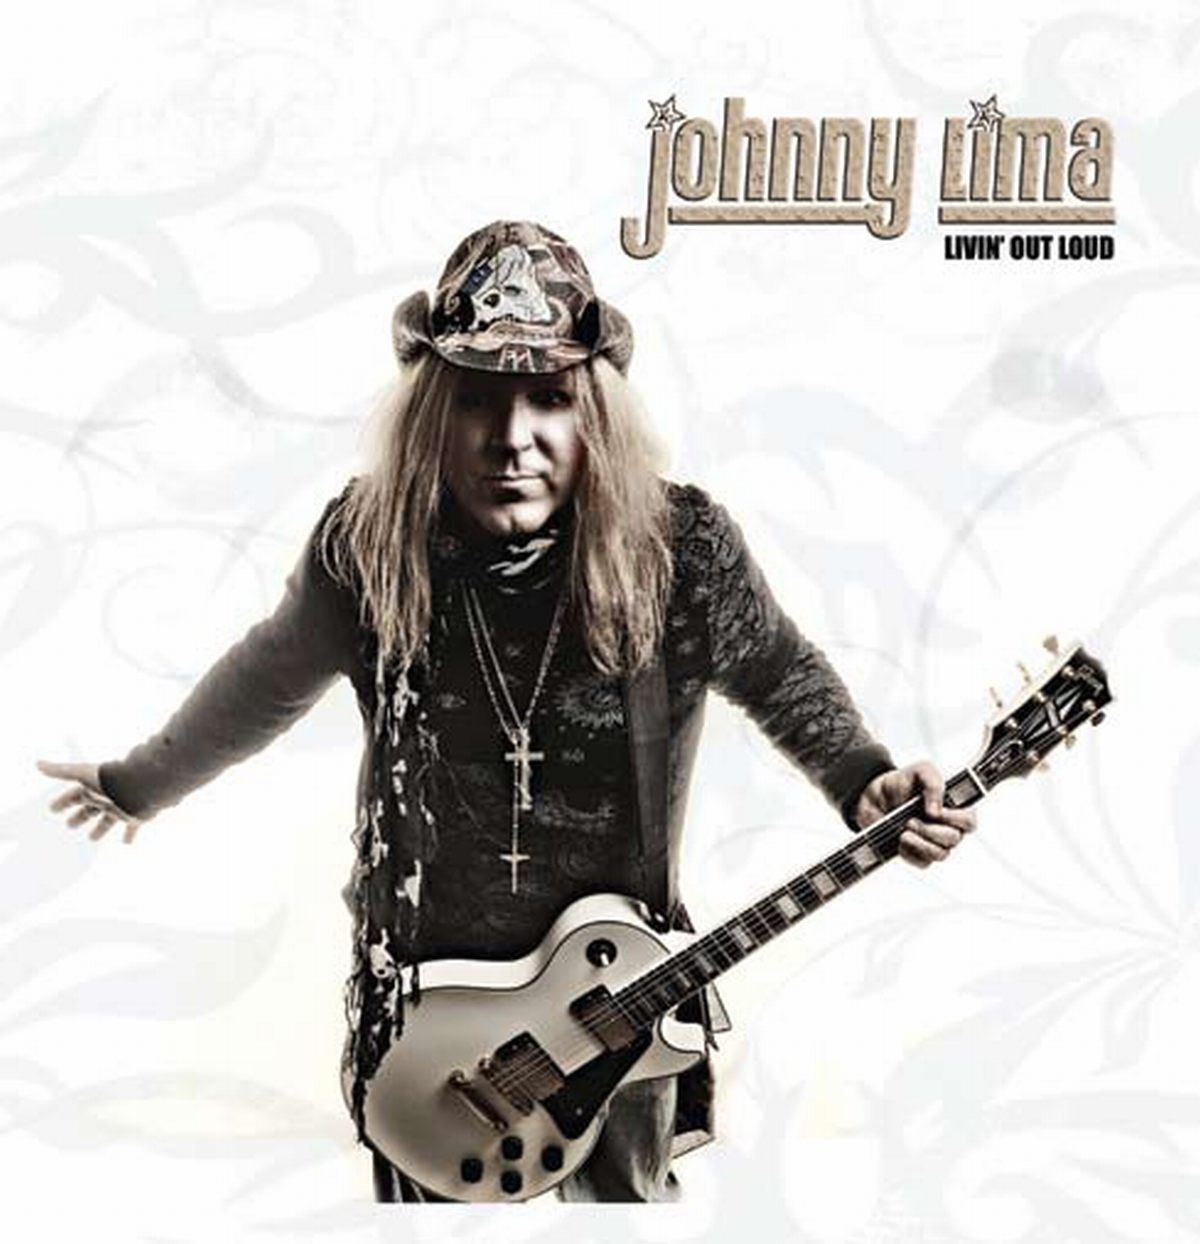 johnny lima - livin out loud (2009)